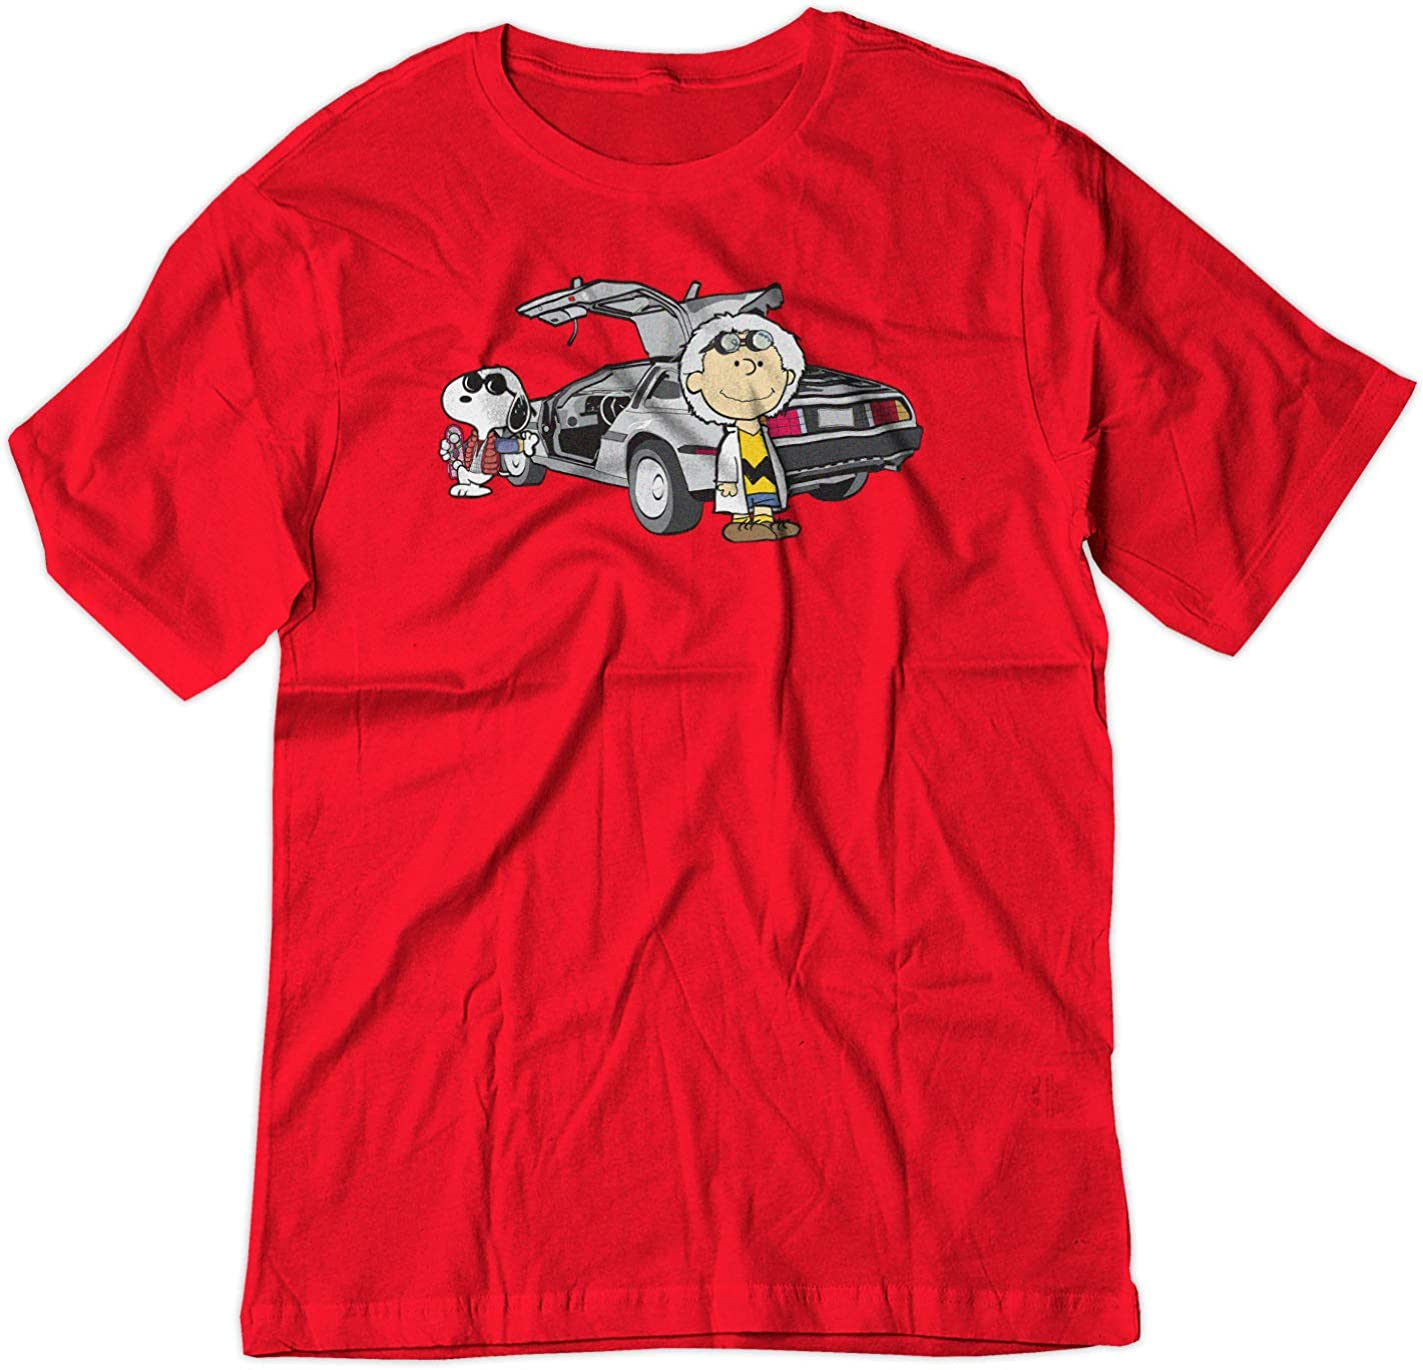 Back To The Future Charlie Brown Snoopy Shirt Red Sm